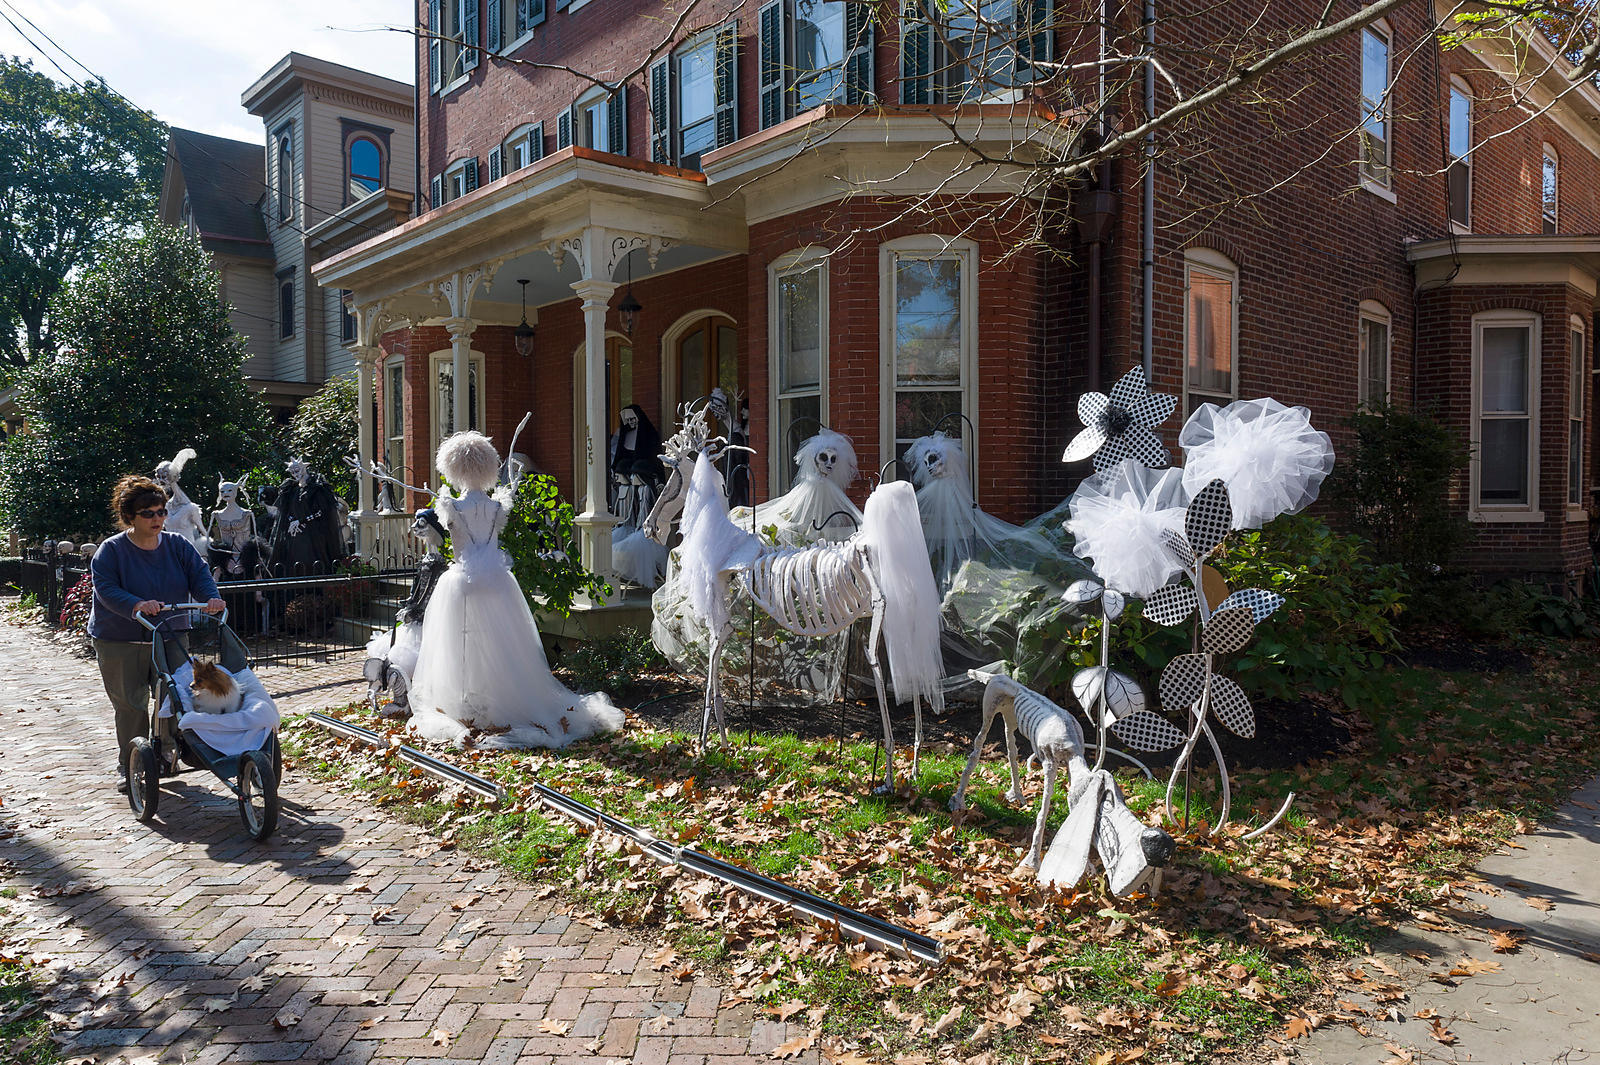 halloween in lambertville - Halloween Design Ideas